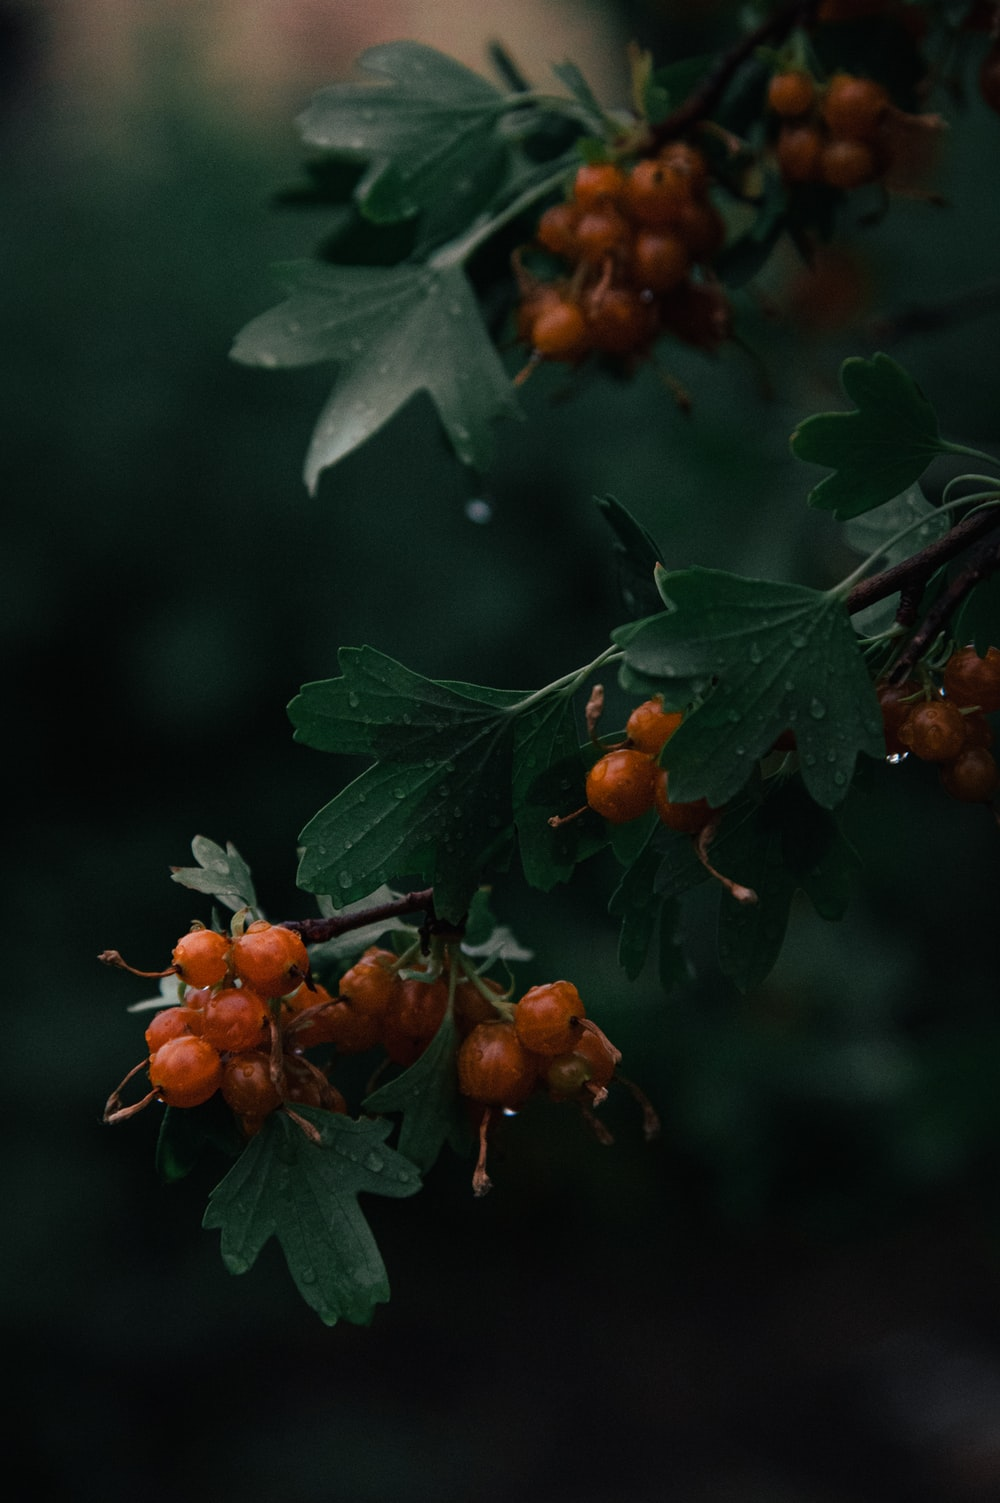 green leaves with orange fruits